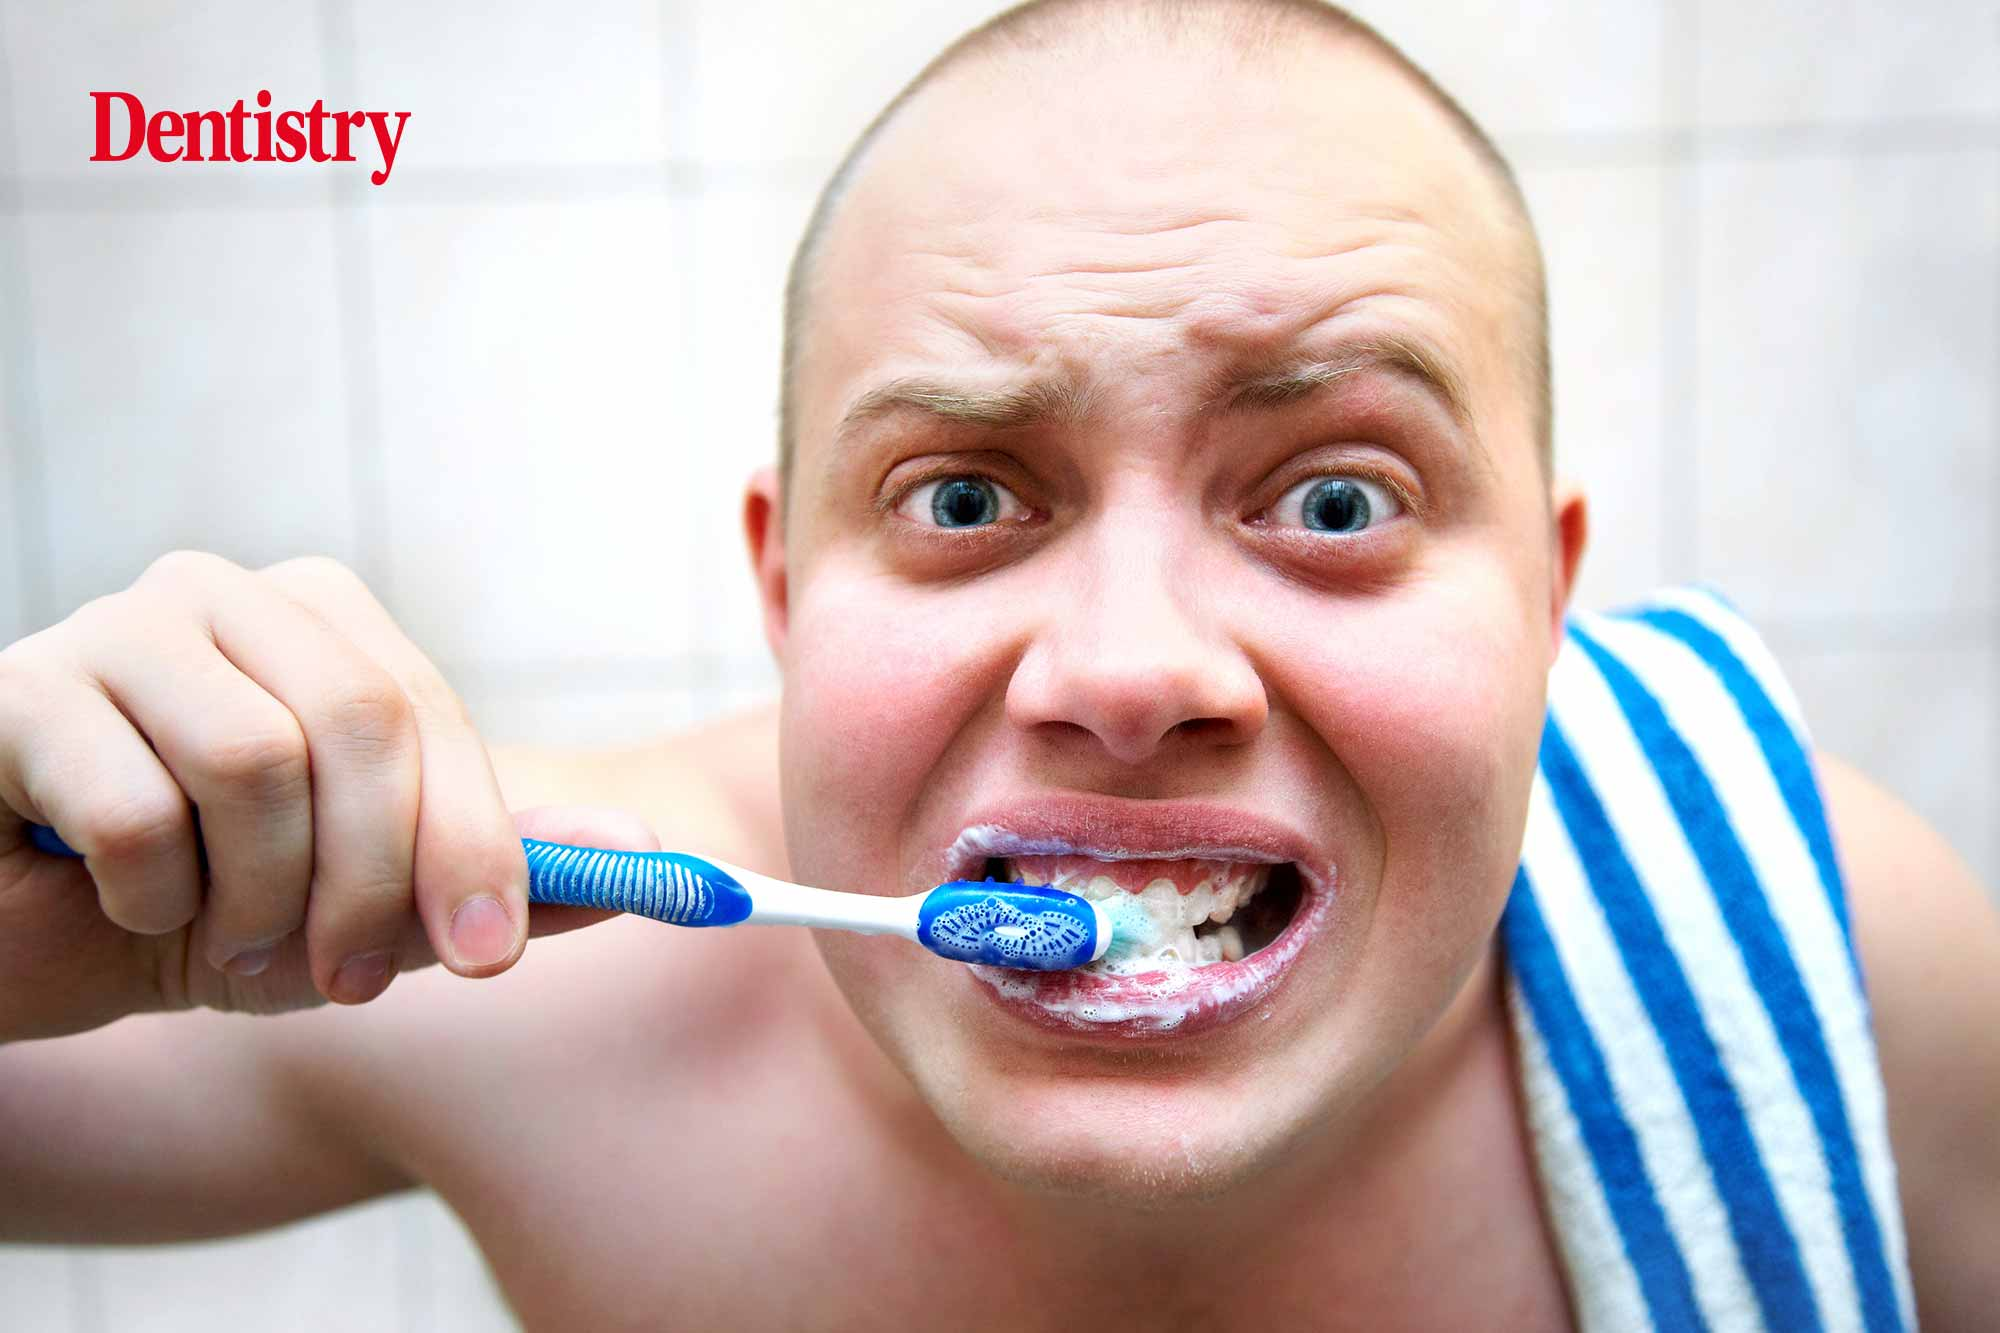 Nearly one quarter of UK adults only clean their teeth once a day